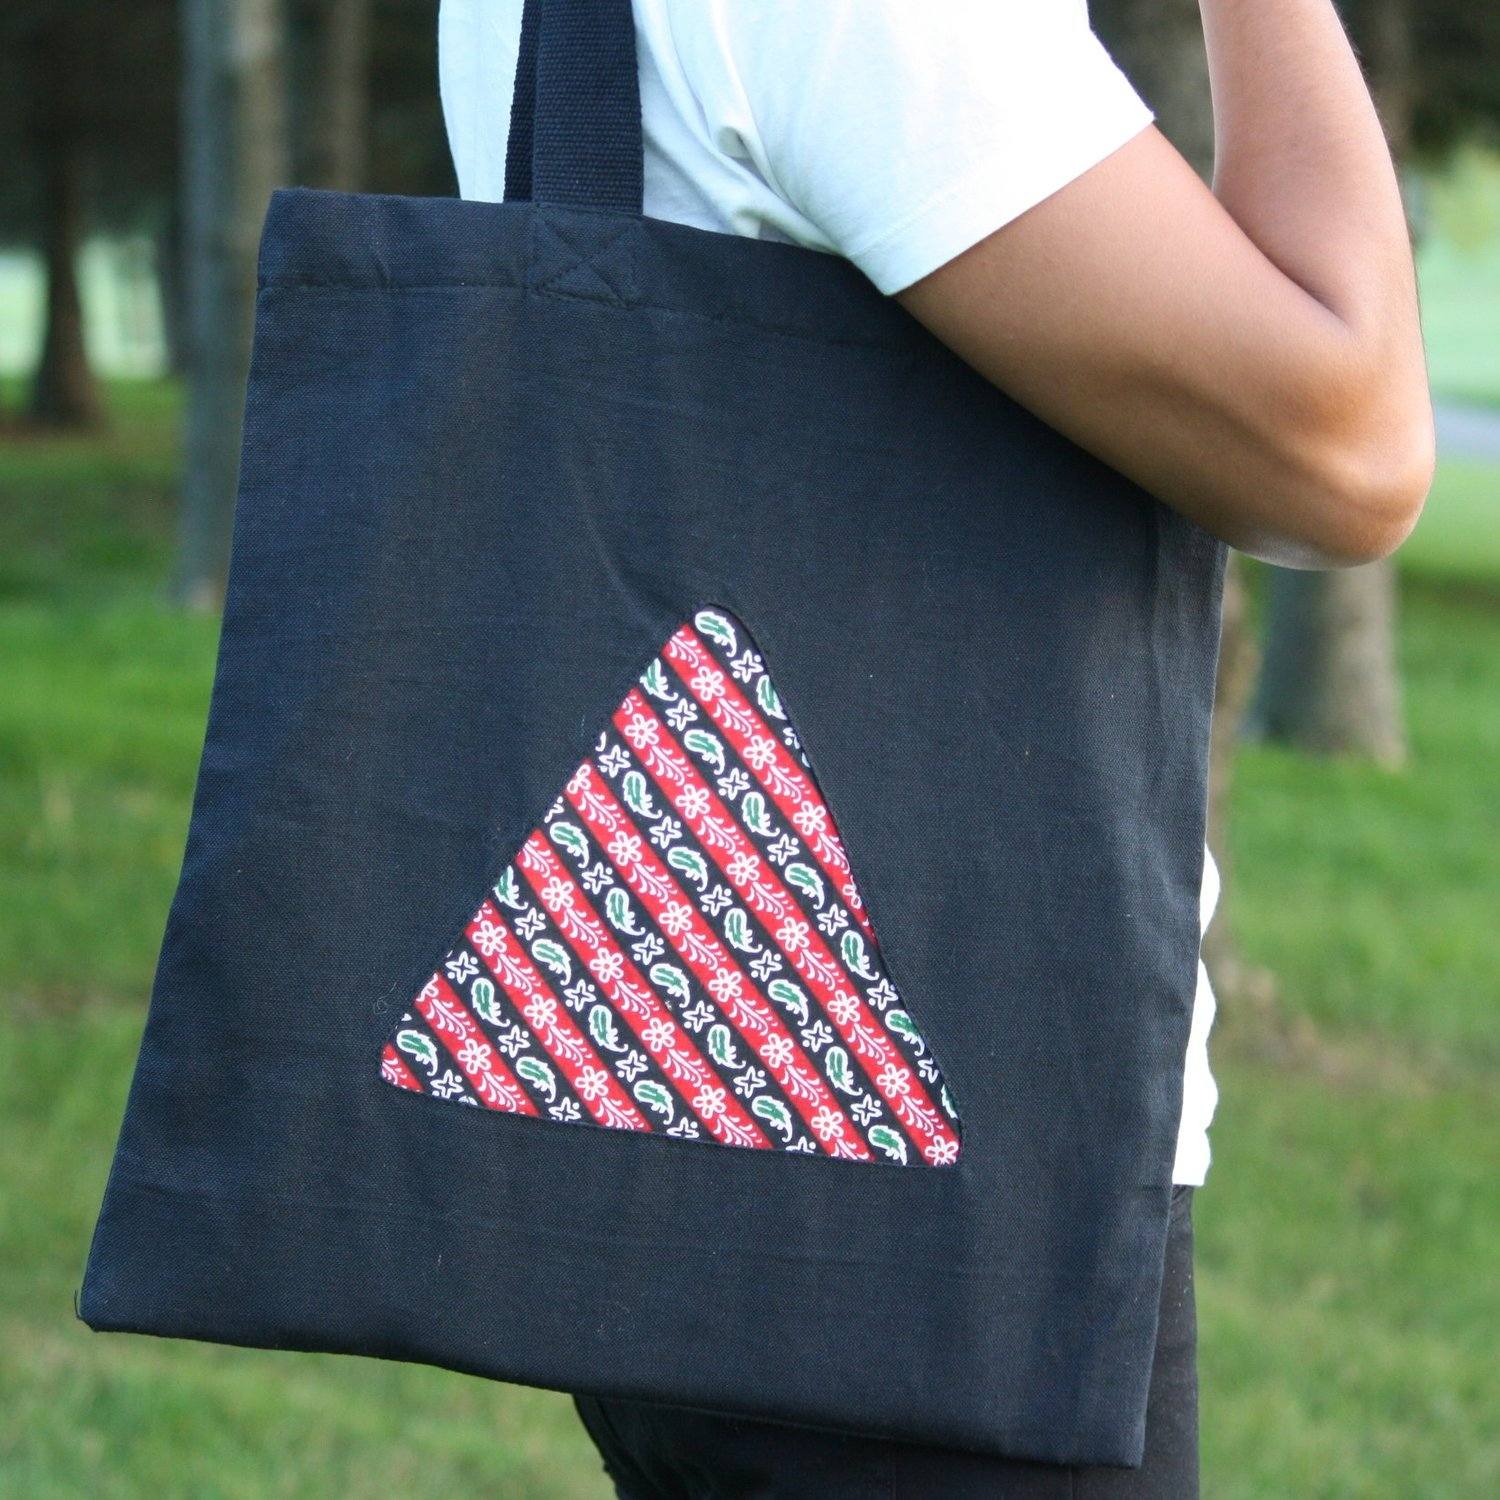 The Triangle Tote , $15  Our signature canvas triangle bag could be your new go-to tote! Durable canvas on the outside, nylon on the inside: perfect for groceries or beach trips. Choose your favorite Dhaka pattern to show through the triangle cutout.